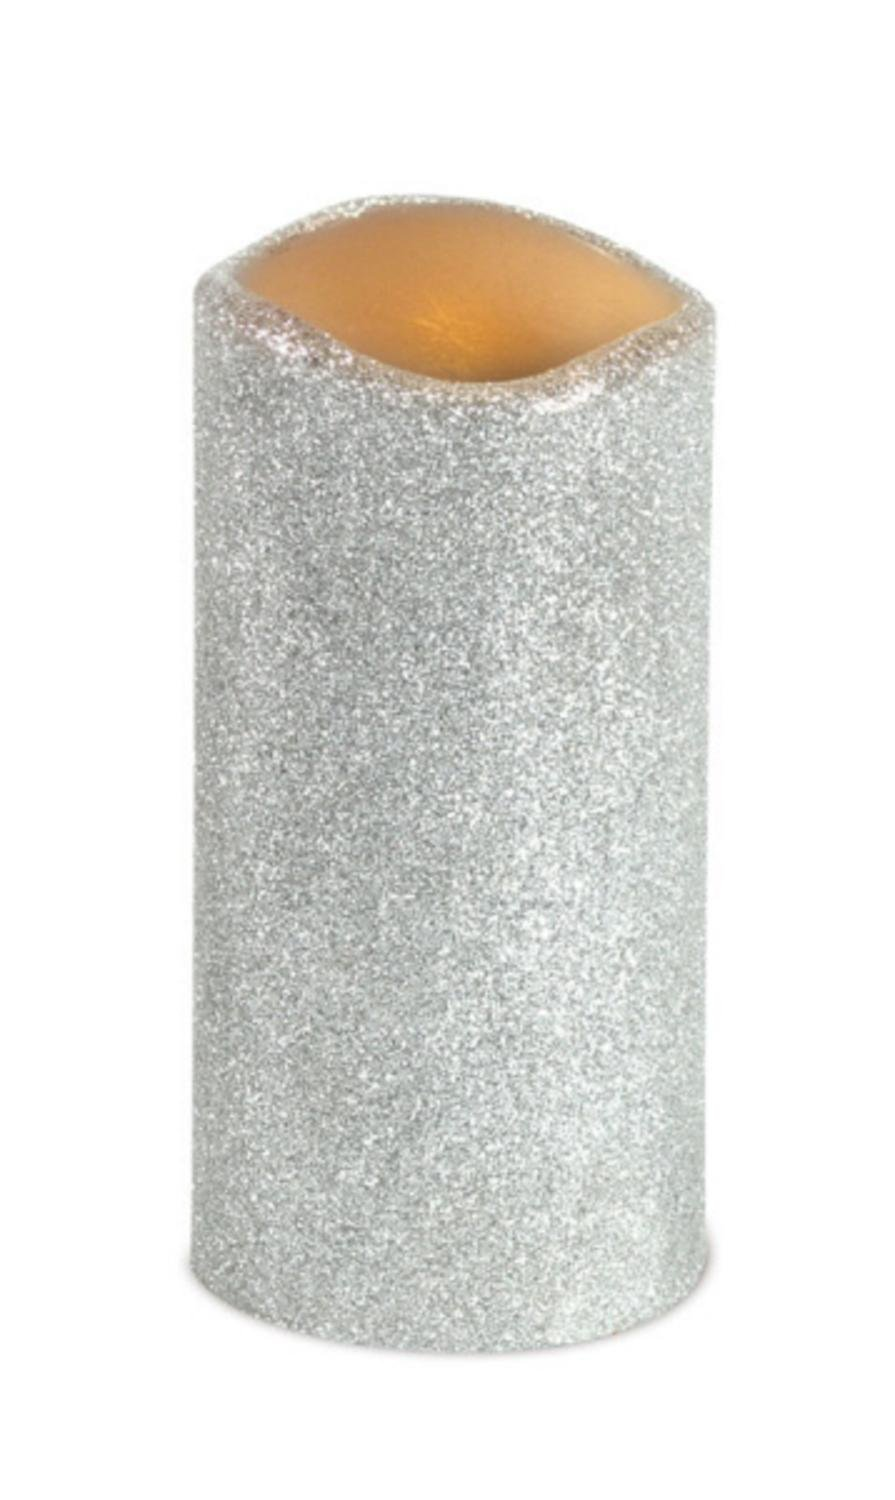 6 Battery Operated Silver Glitter Flameless LED Christmas Pillar Candles 6'' by CC Christmas Decor